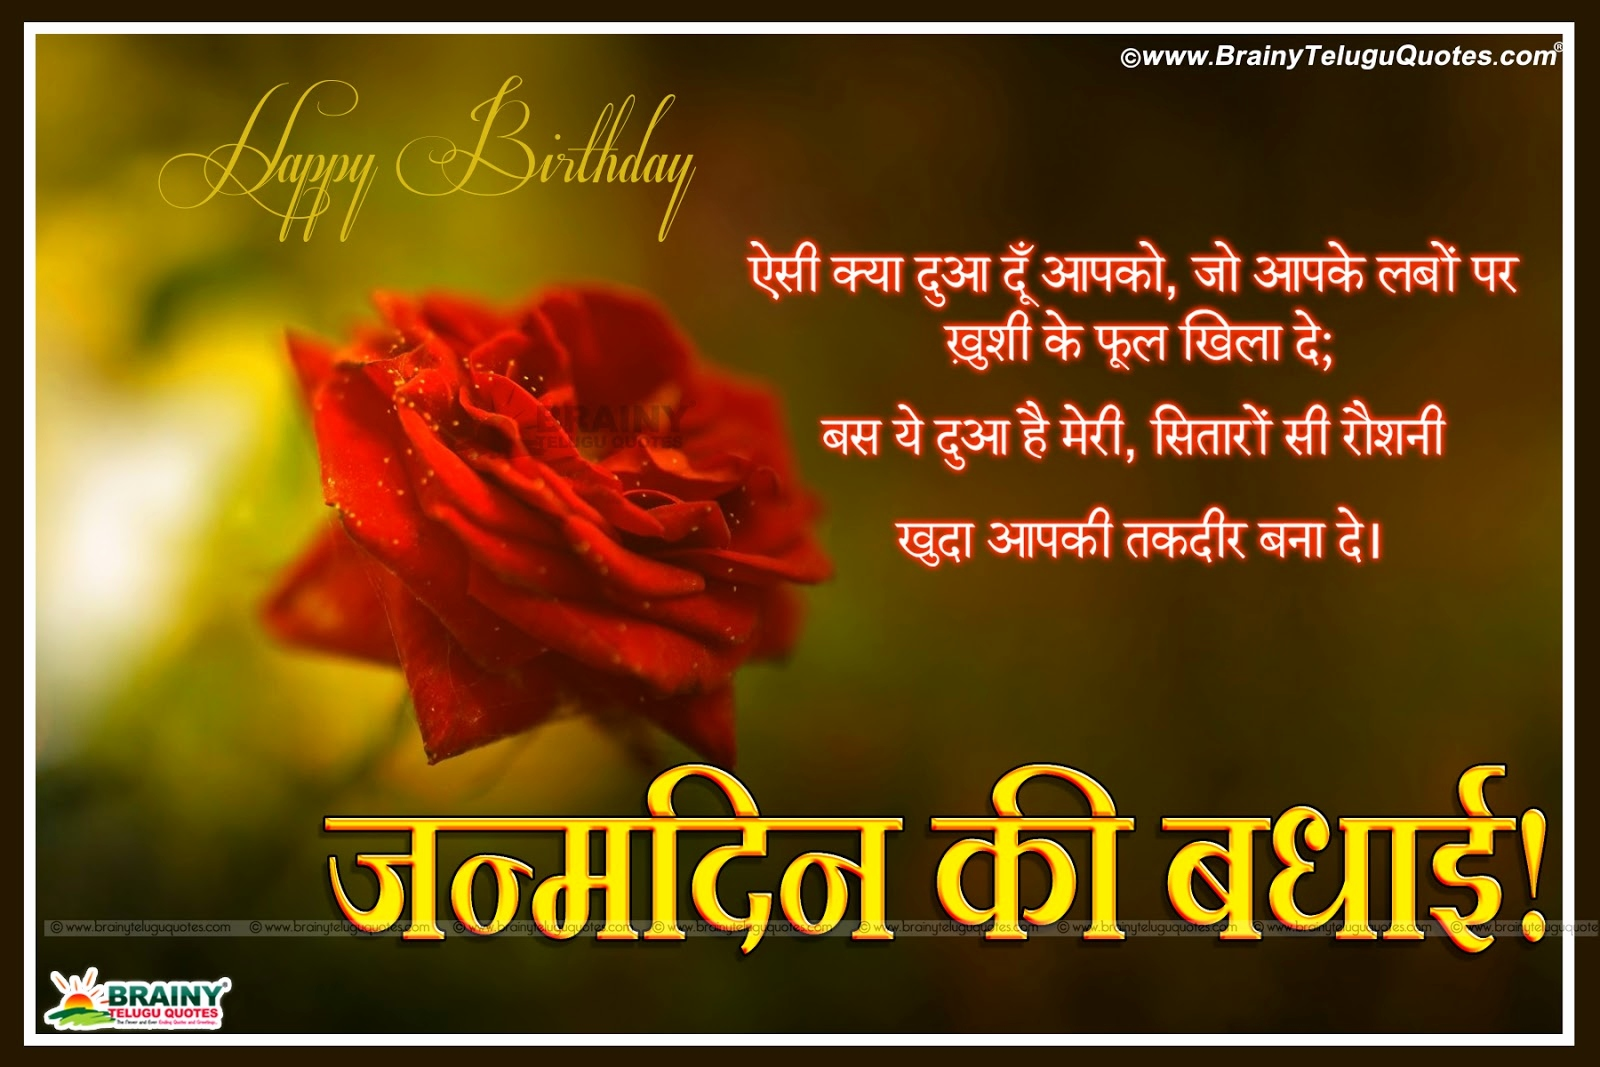 brainy quotes birthday message ; brainy-quotes-for-birthday-luxury-hindi-birthday-greetings-wishes-quotes-sms-messages-for-friends-of-brainy-quotes-for-birthday